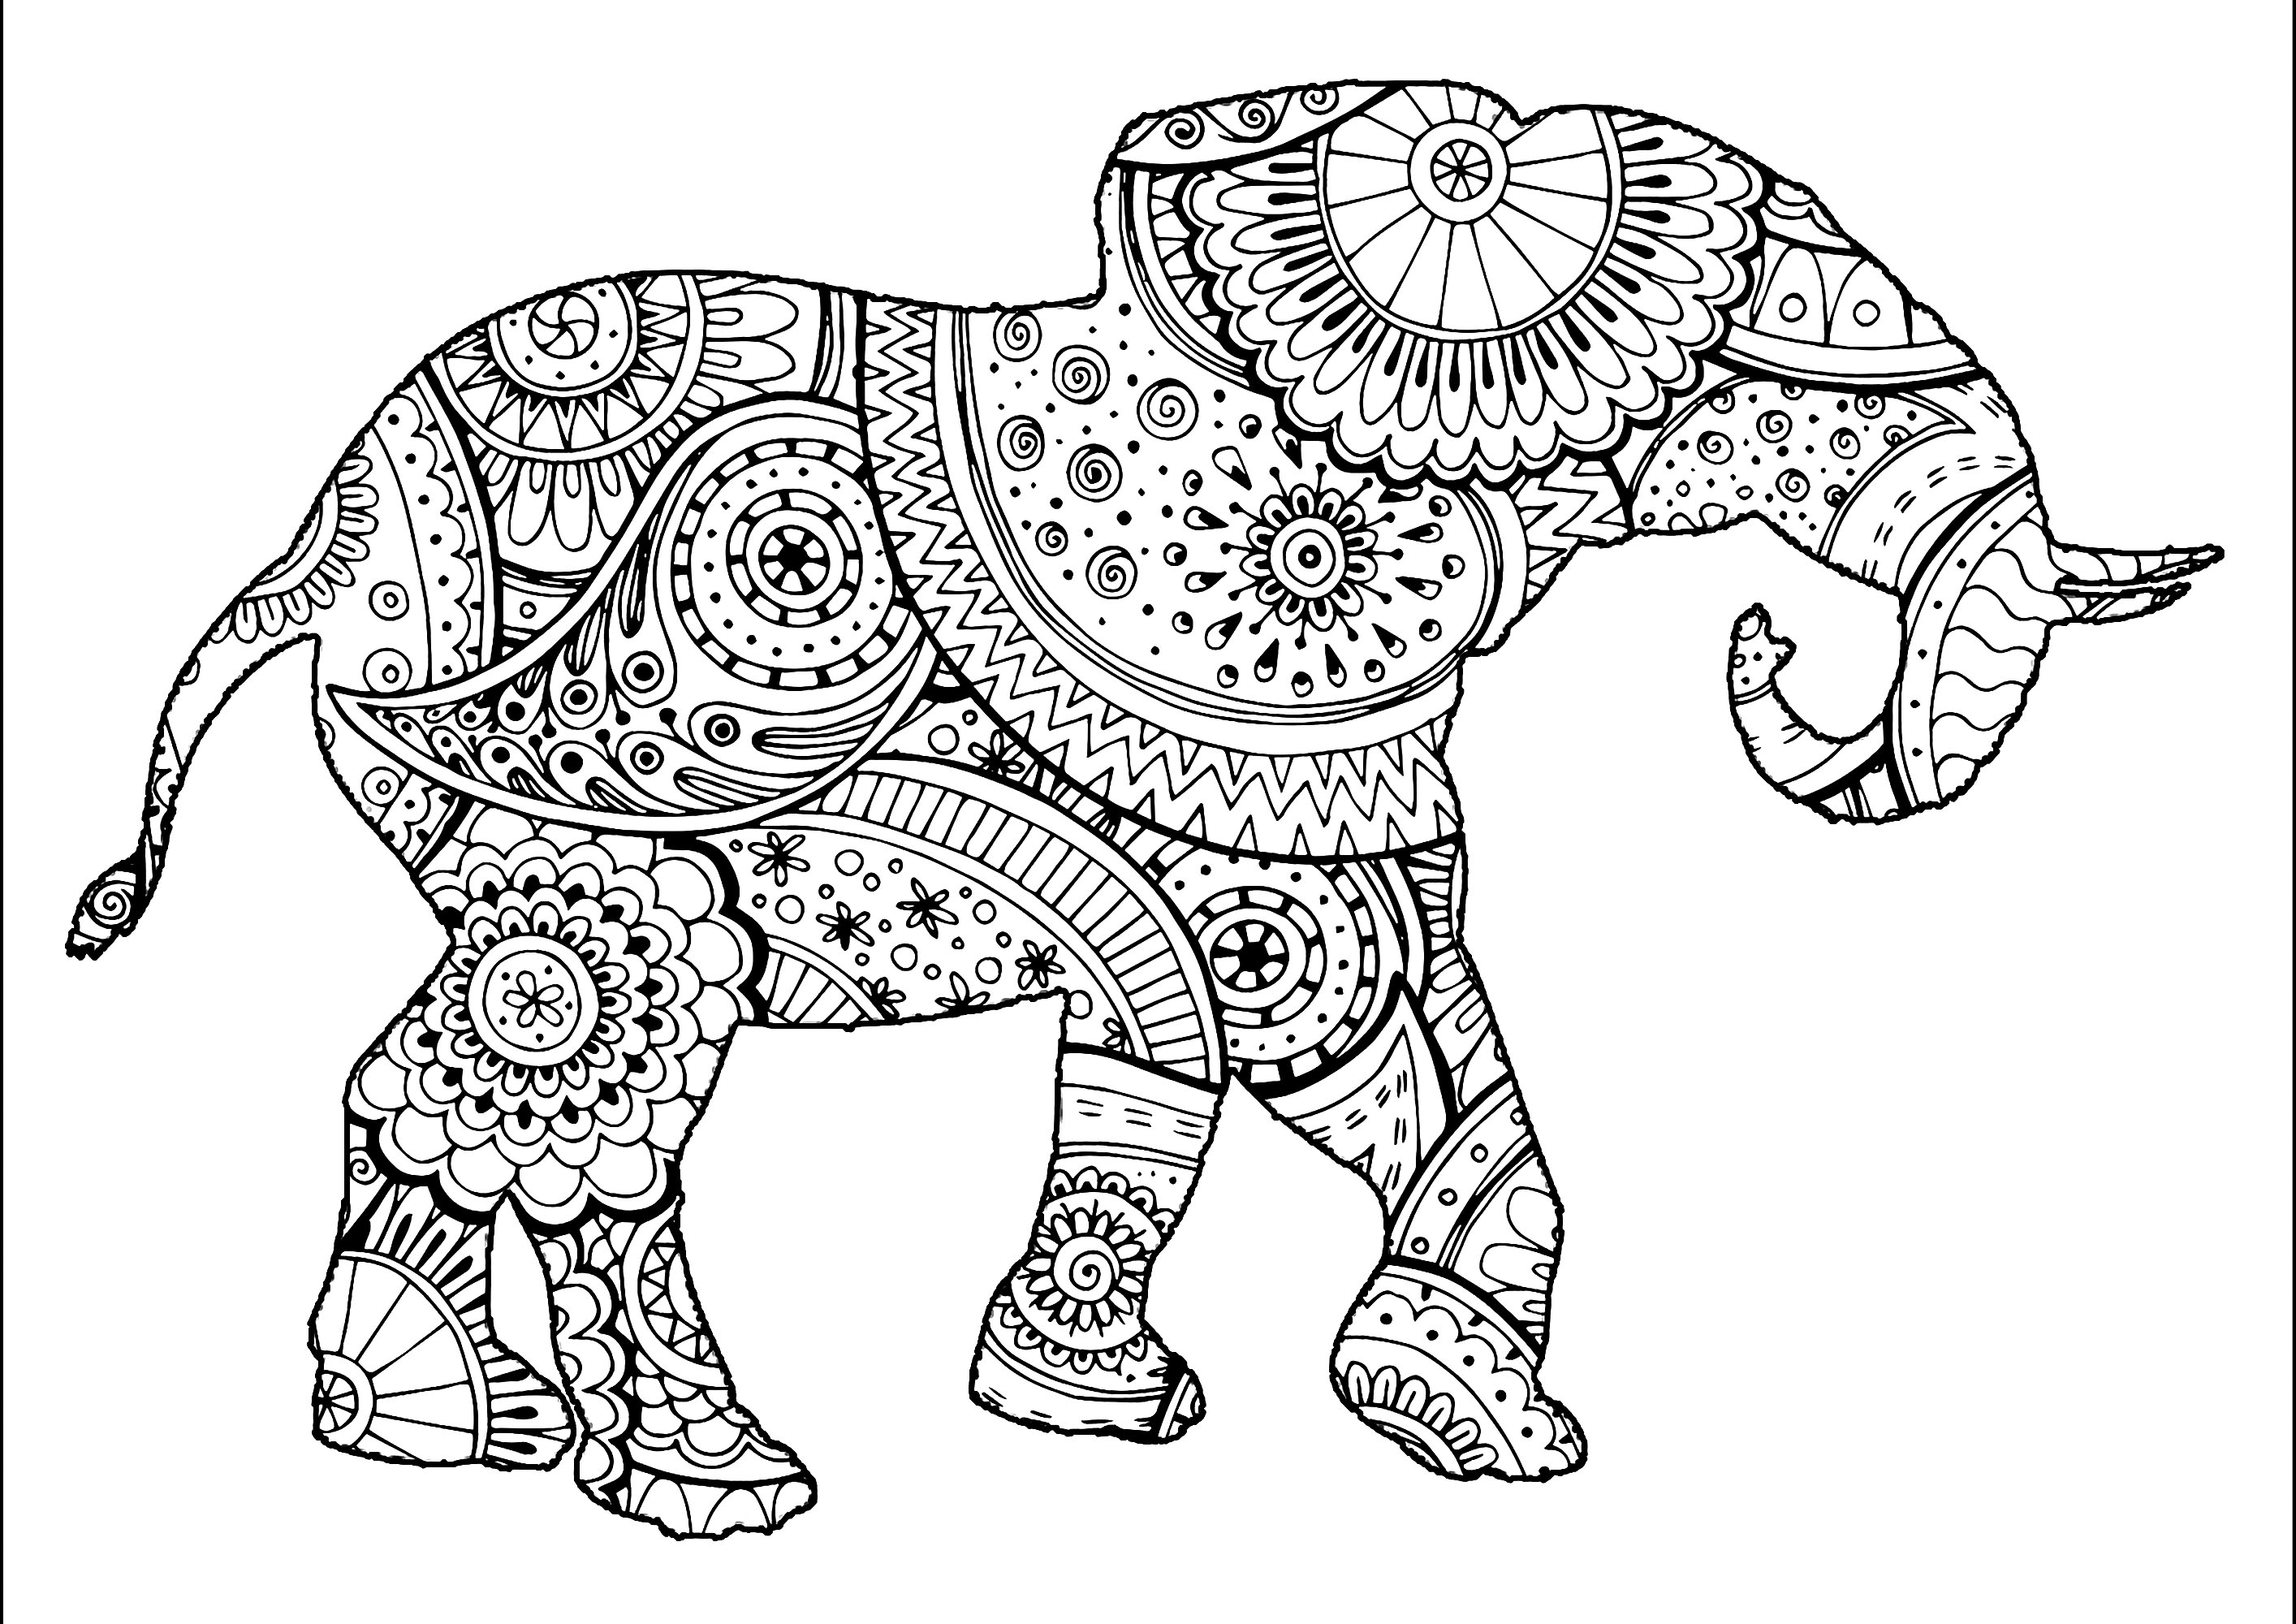 elephant coloring pages elephant shape with patterns elephants adult coloring pages pages elephant coloring